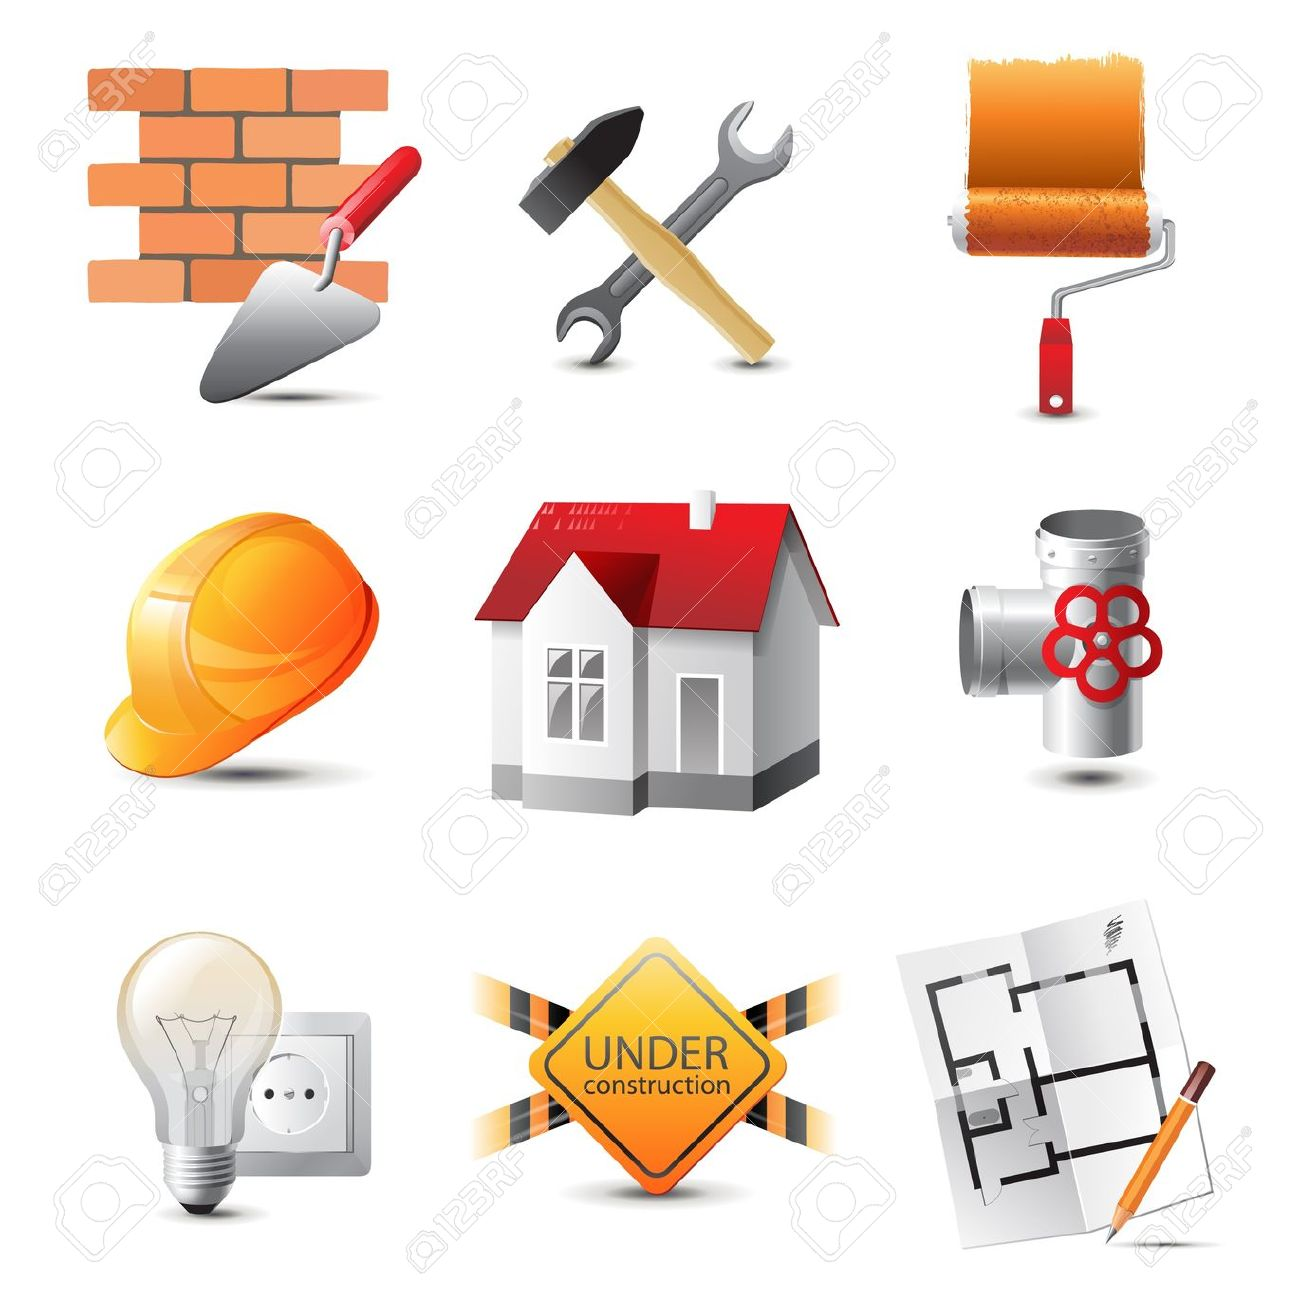 Construction tools clipart.